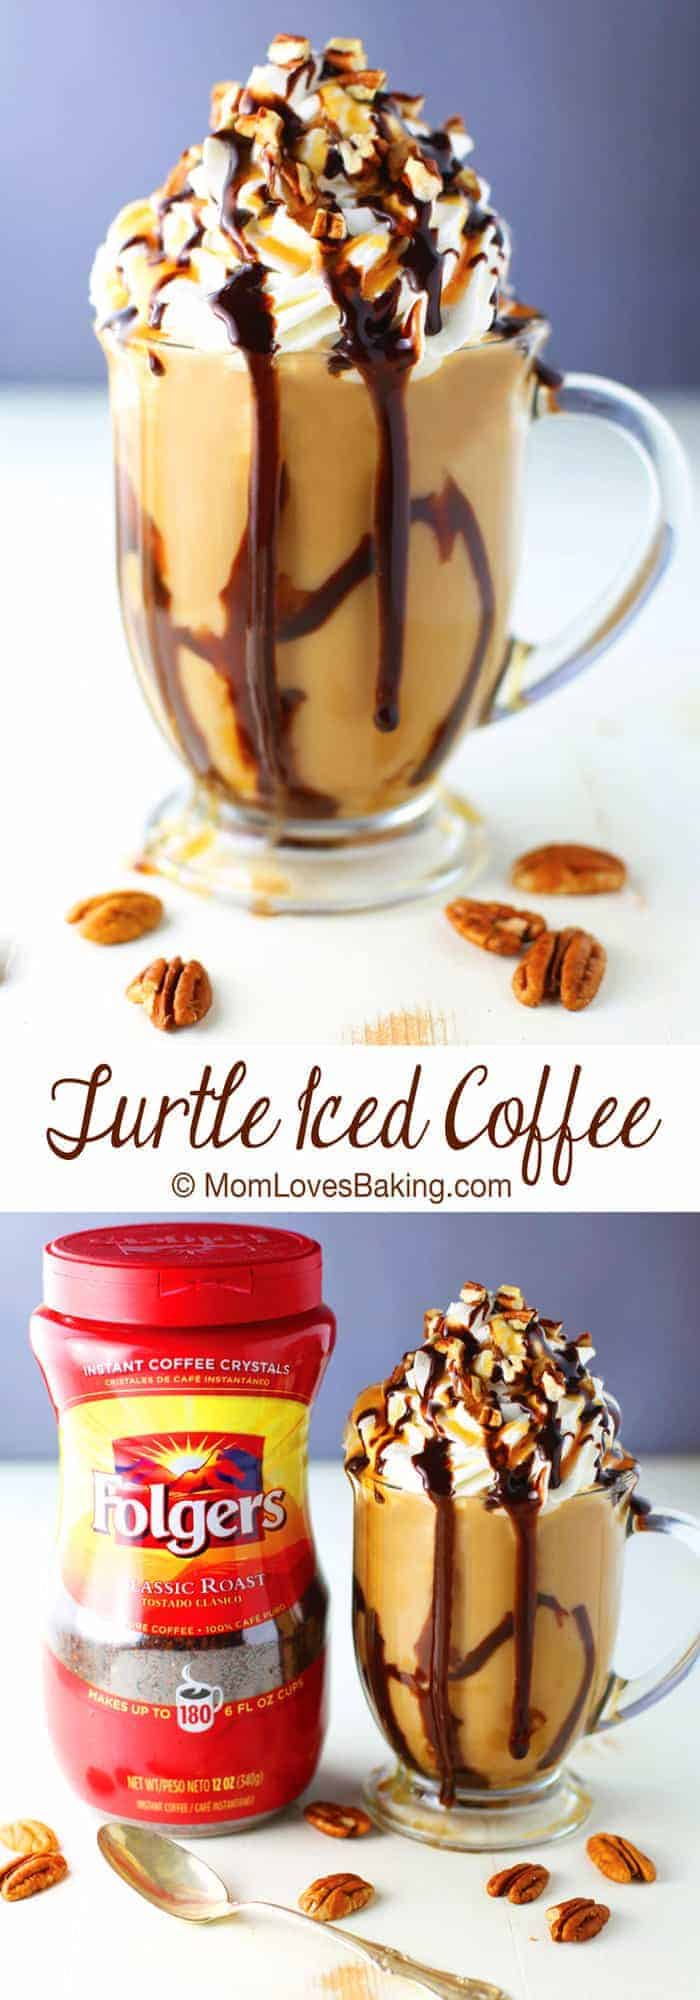 Turtle Iced Coffee